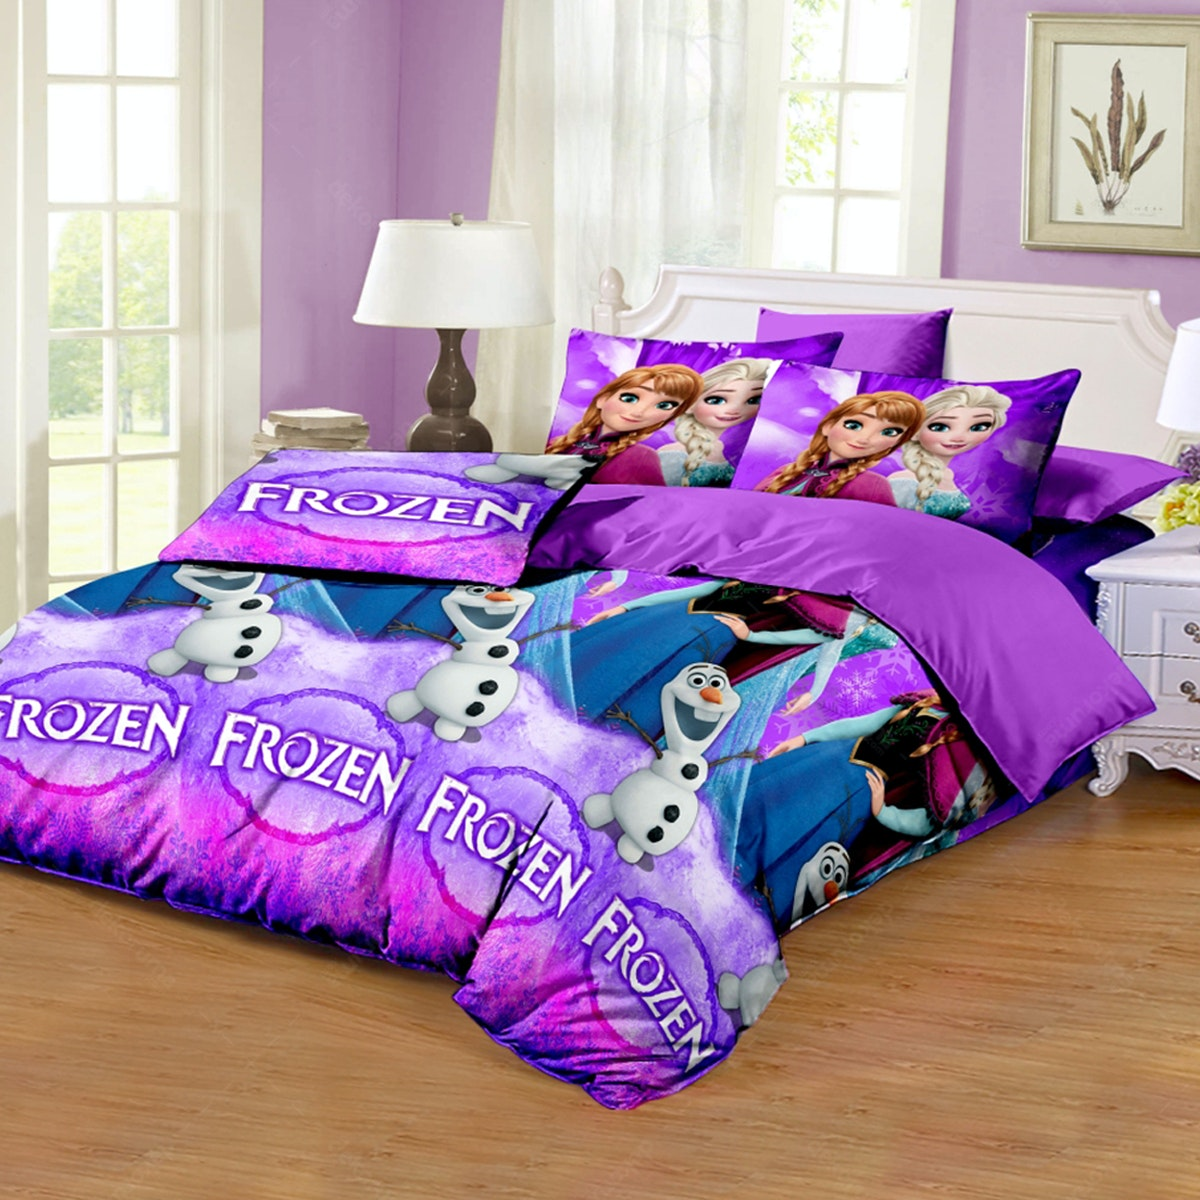 Pesona Disperse Sprei Frozen Lama Uk 180x200x20cm